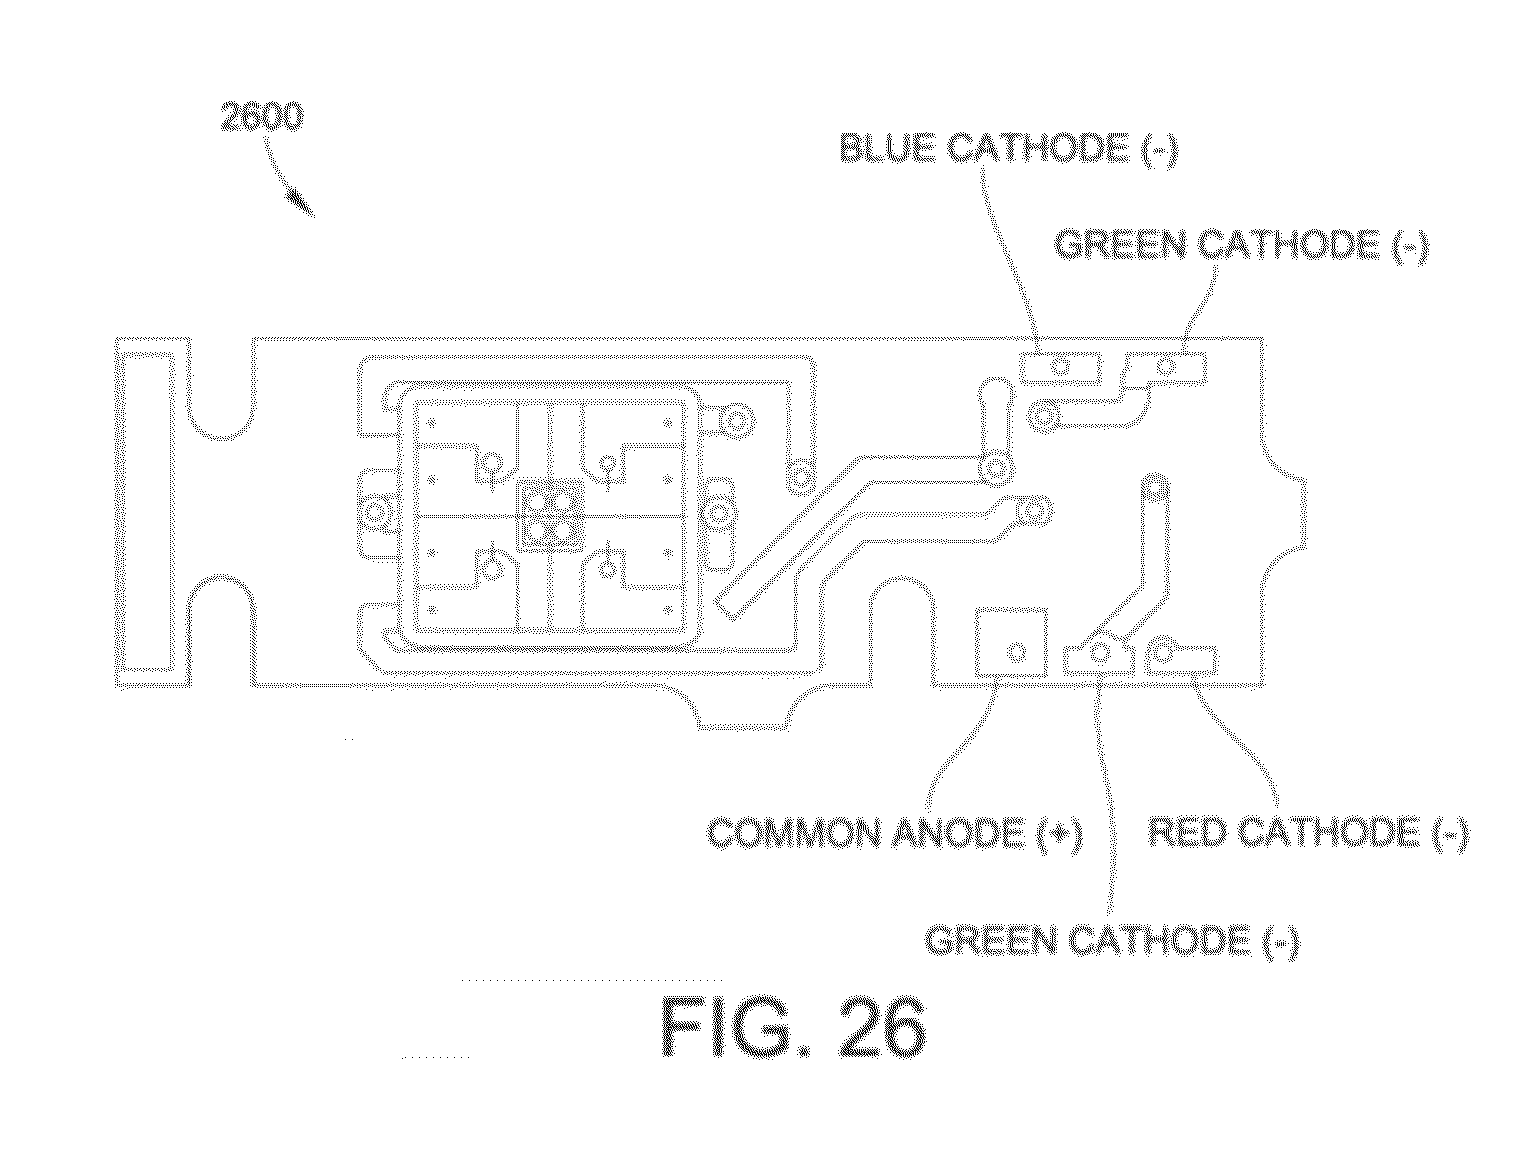 Patent US 8,472,120 B2 on